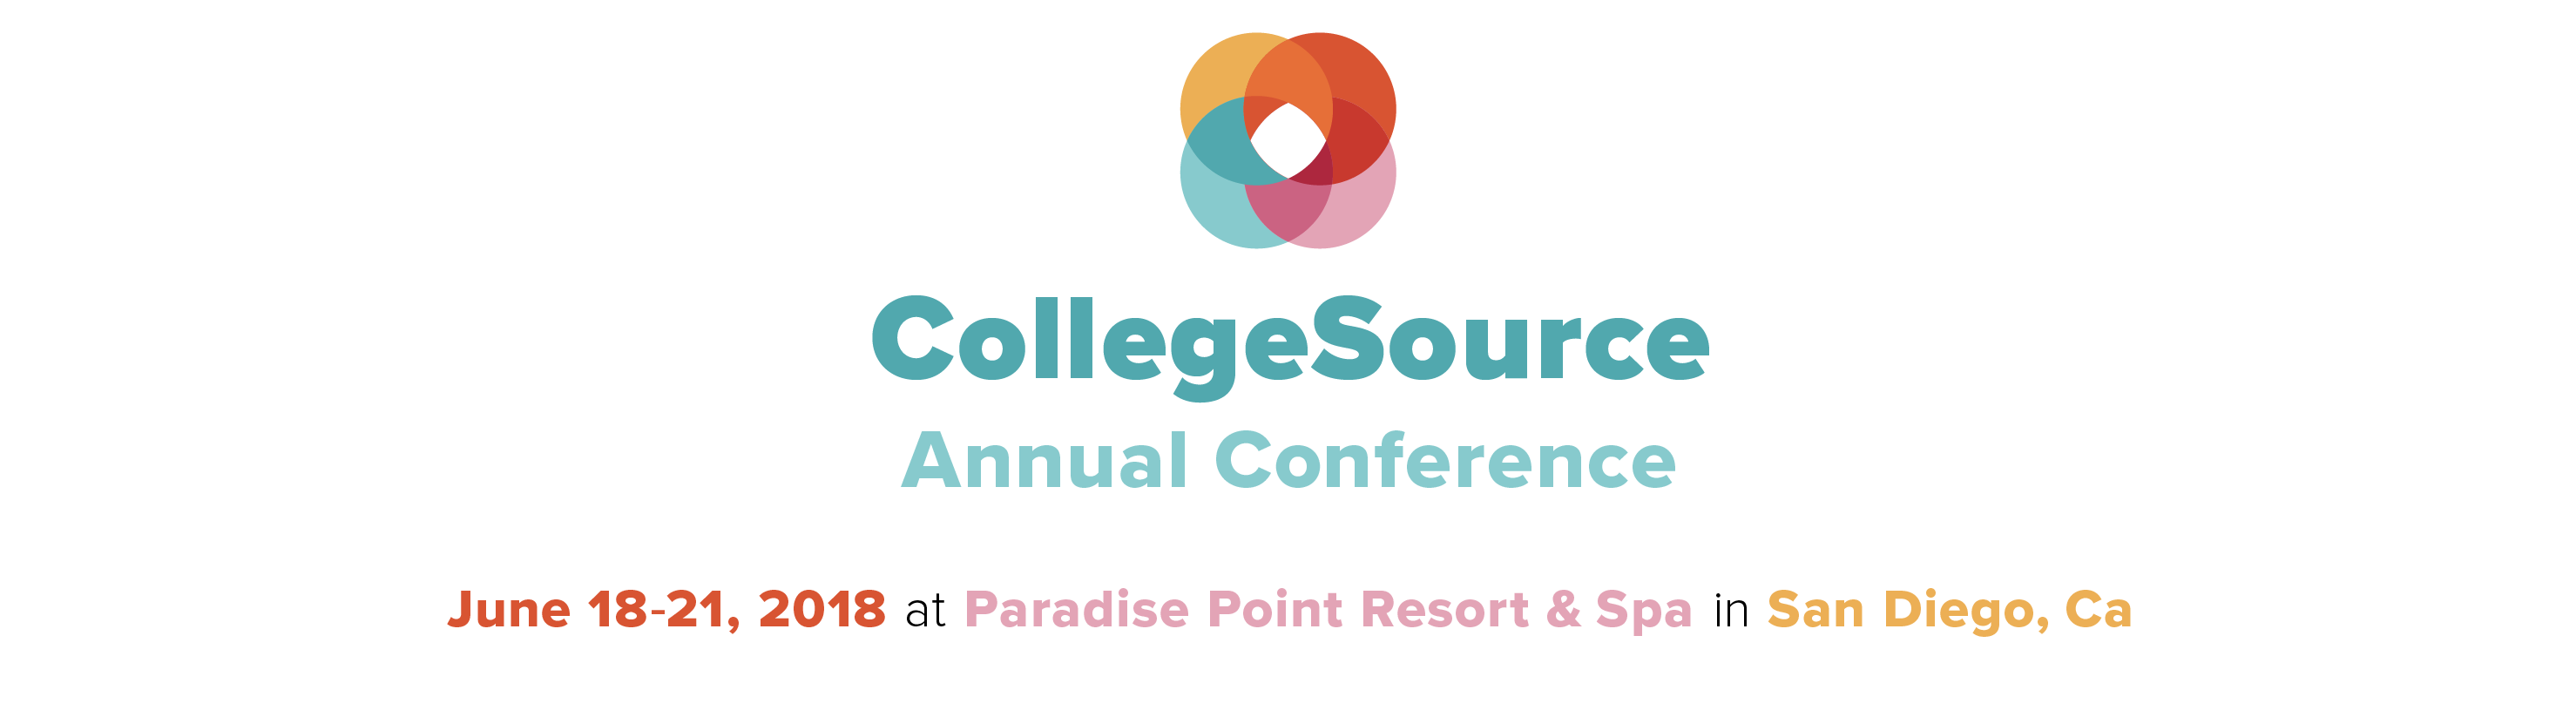 2018 CollegeSource Annual Conference